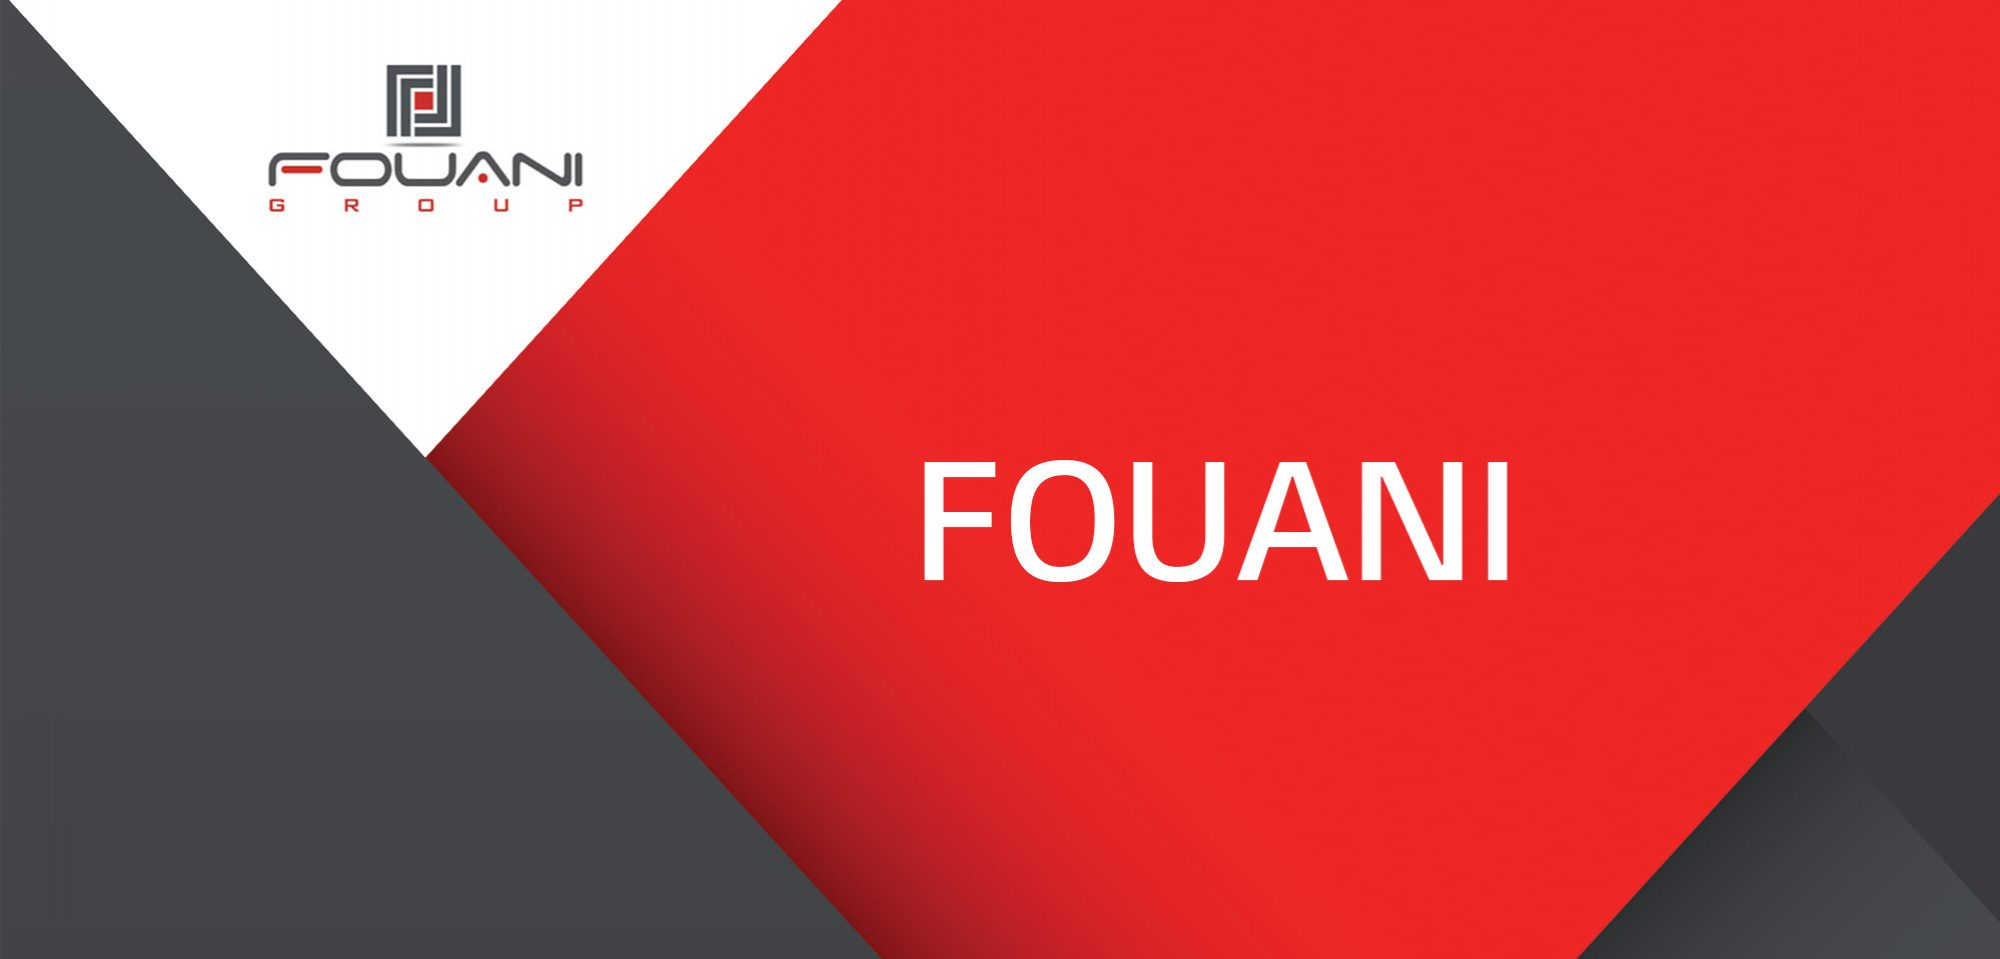 FOUANI GROUP